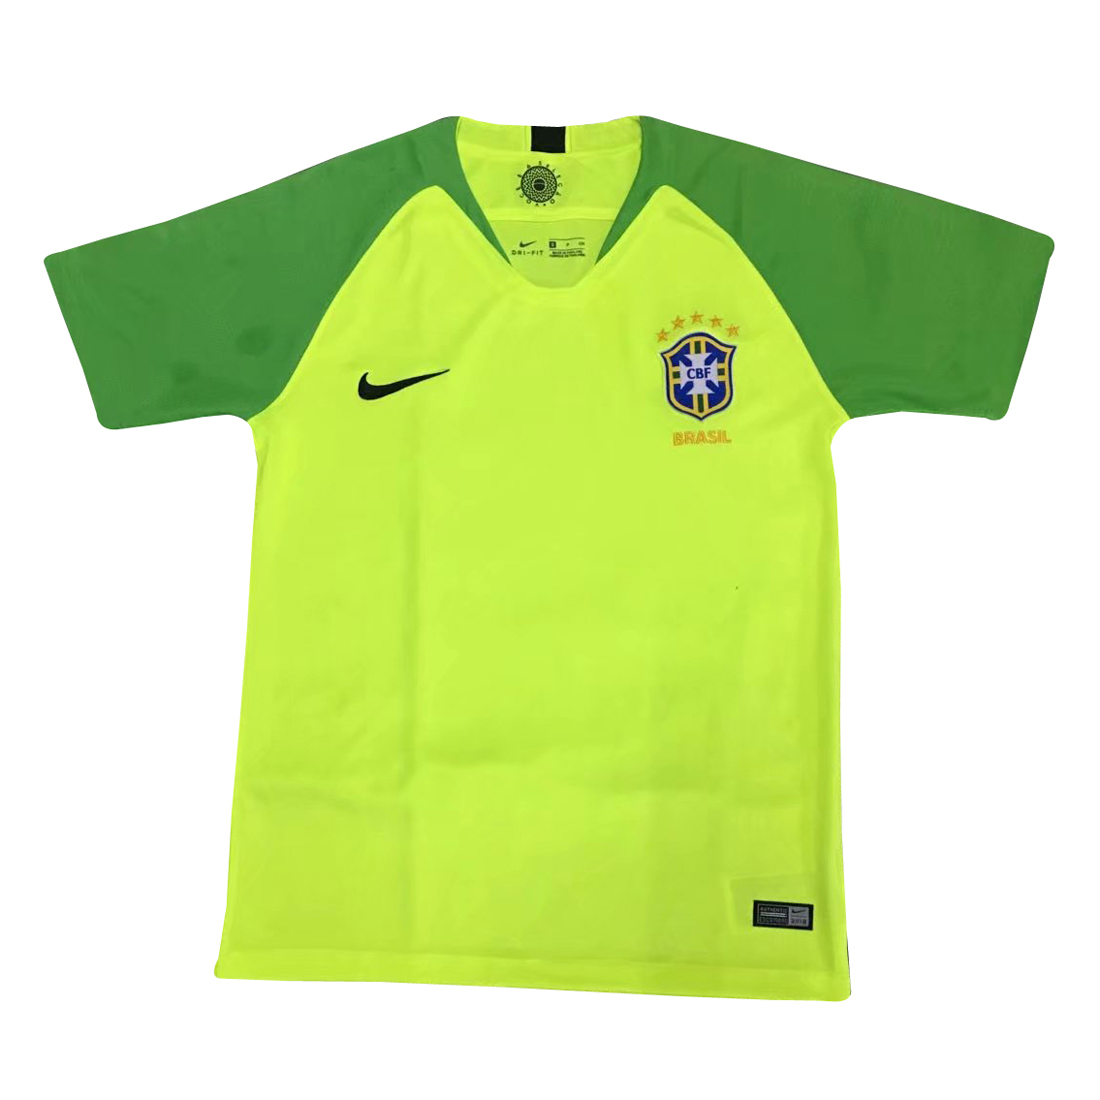 Brazil Goalkeeper Soccer Jerseys 2018 World Cup Green Football Shirts